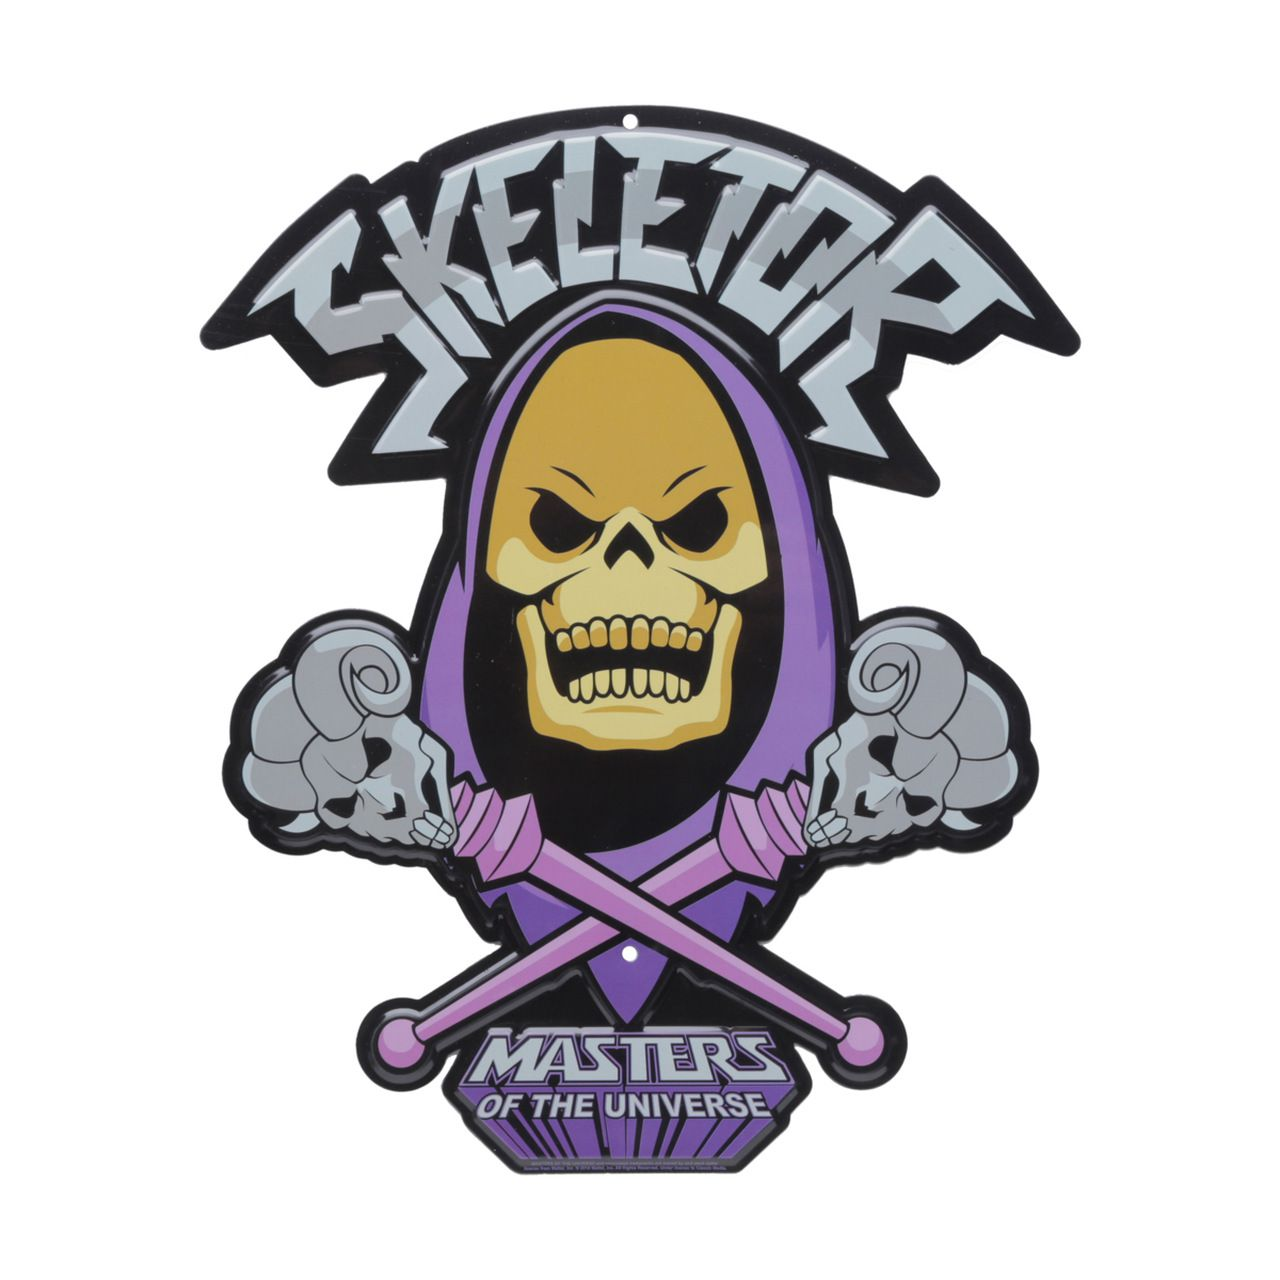 Placa Decorativa Esqueleto (Skeletor): Mestres Do Universo (Masters of the Universe) - Urban